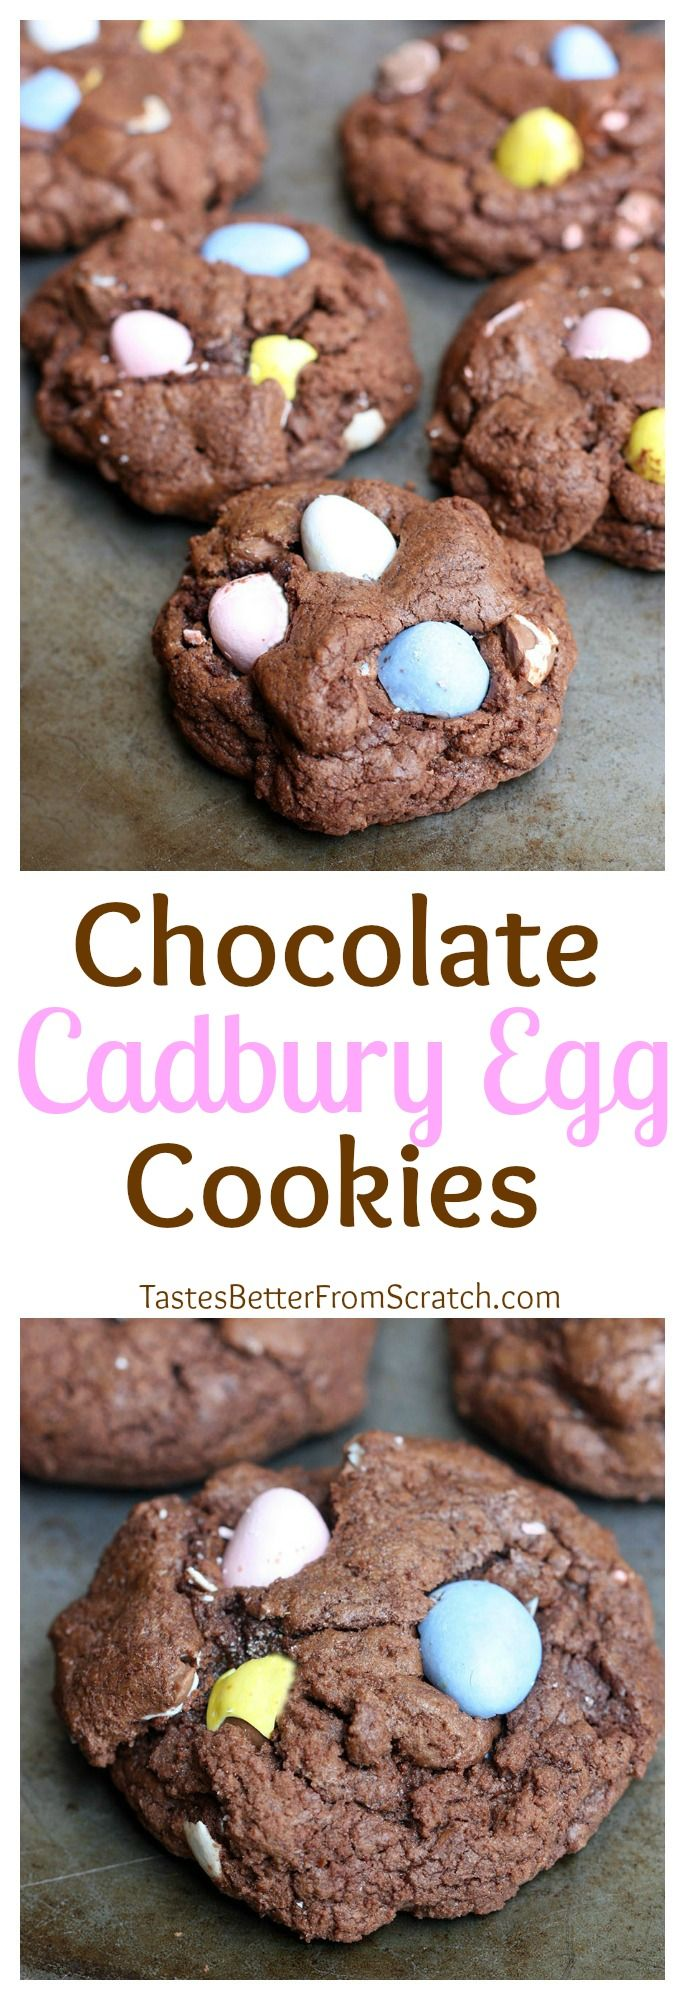 Thick and chewy double Chocolate Cadbury Egg Cookies on MyRecipeMagic.com